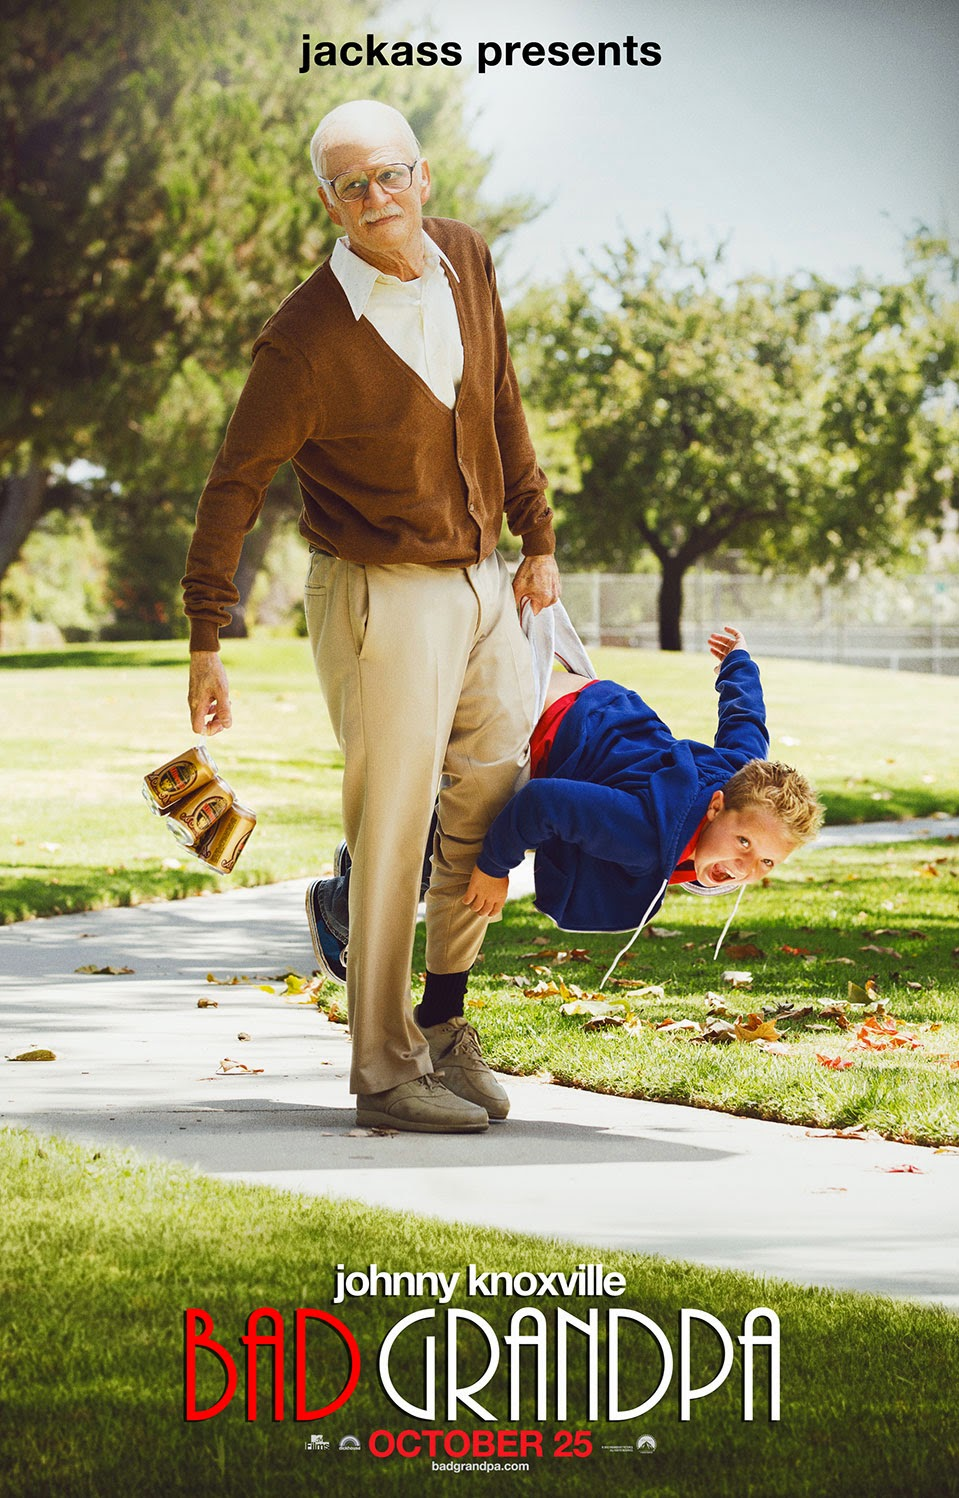 Ver Jackass Presents: Bad Grandpa (2013) Online